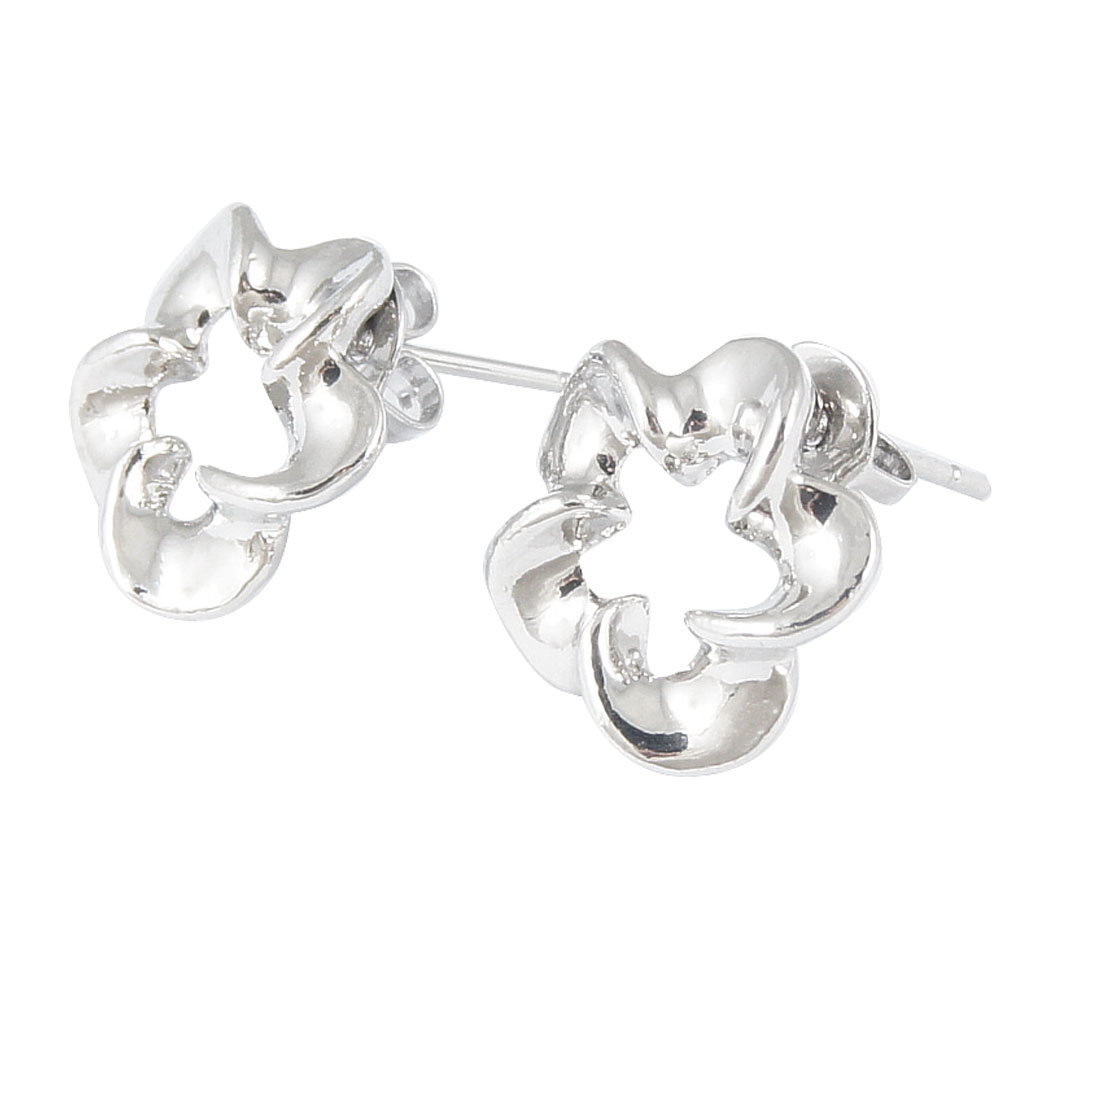 Lady Metal Floral Shape Decor Pierced Ear Stud Nail Earrings Silver Tone Pair